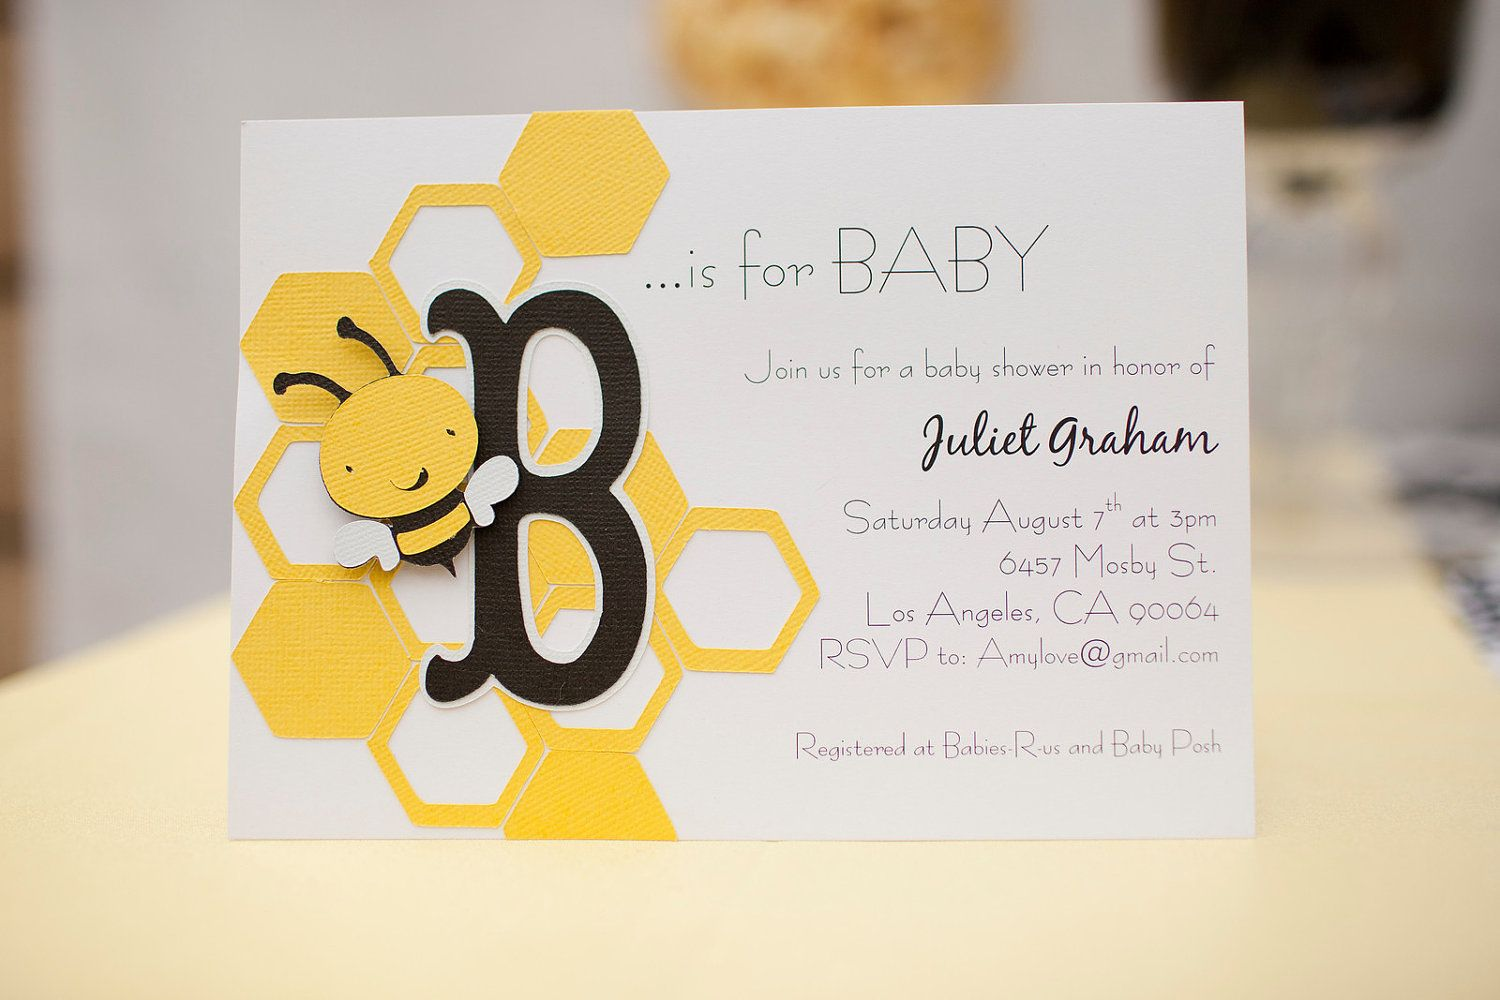 Baby shower invitations honey bee theme and b is for baby set of baby shower invitations honey bee theme and b is for baby set of 10 handmade 3000 via etsy solutioingenieria Image collections